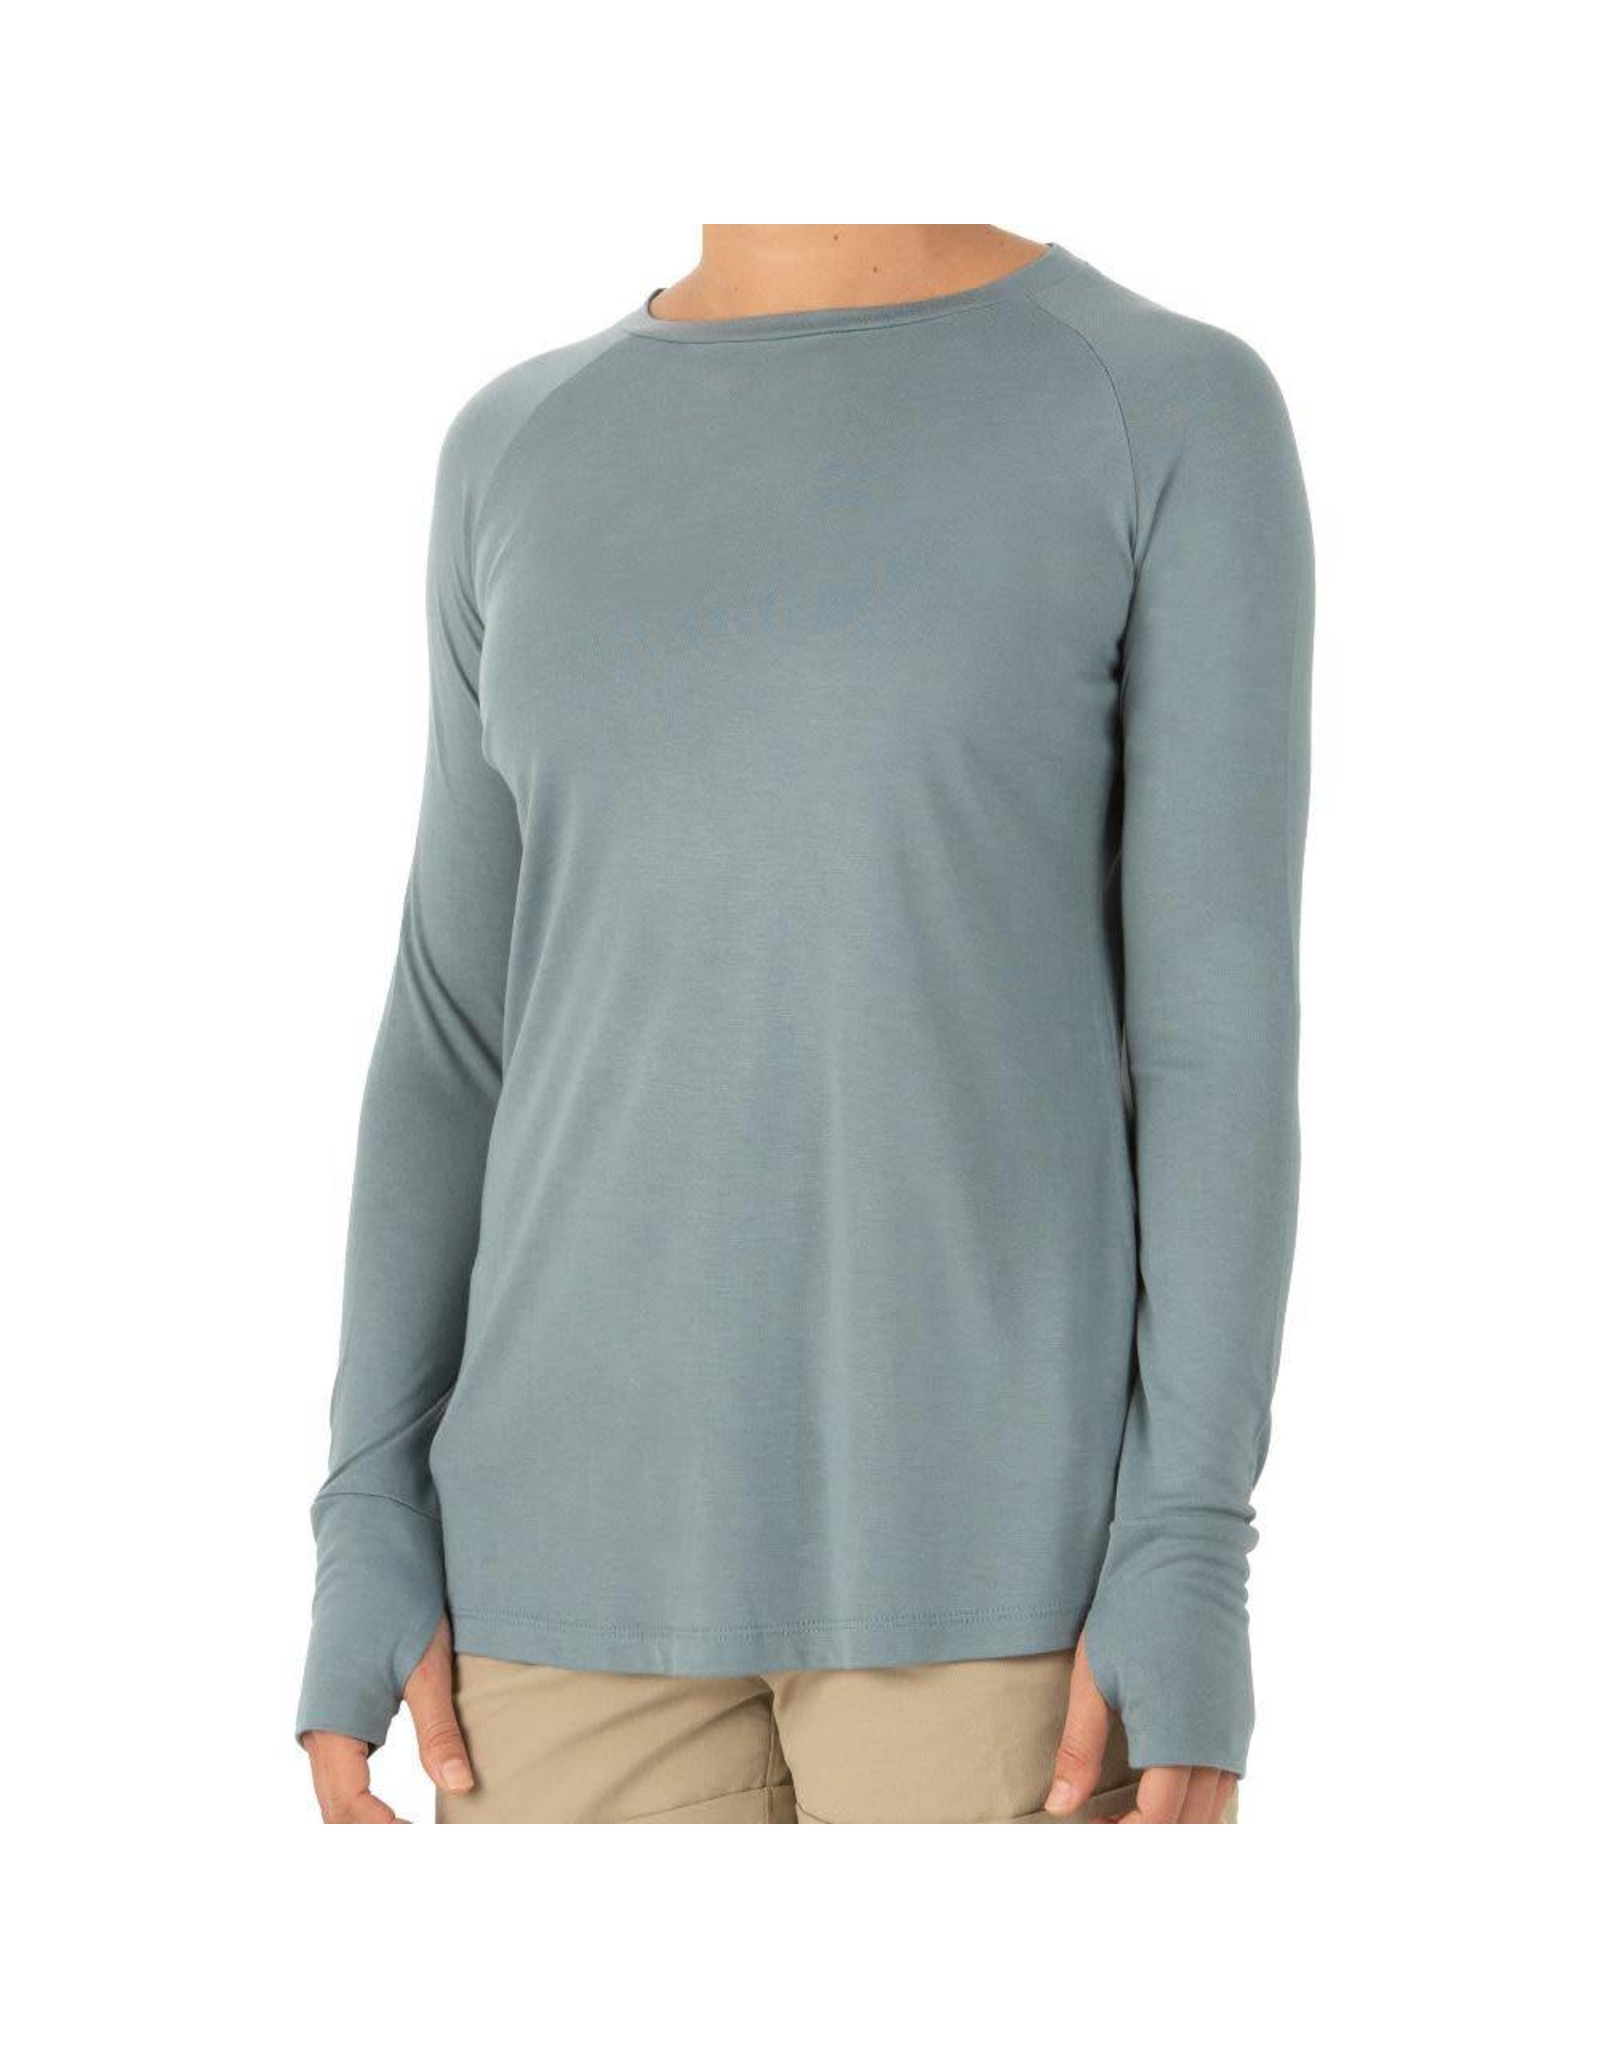 Free Fly Apparel Women's Free Fly Bamboo Weekender Long-Sleeve